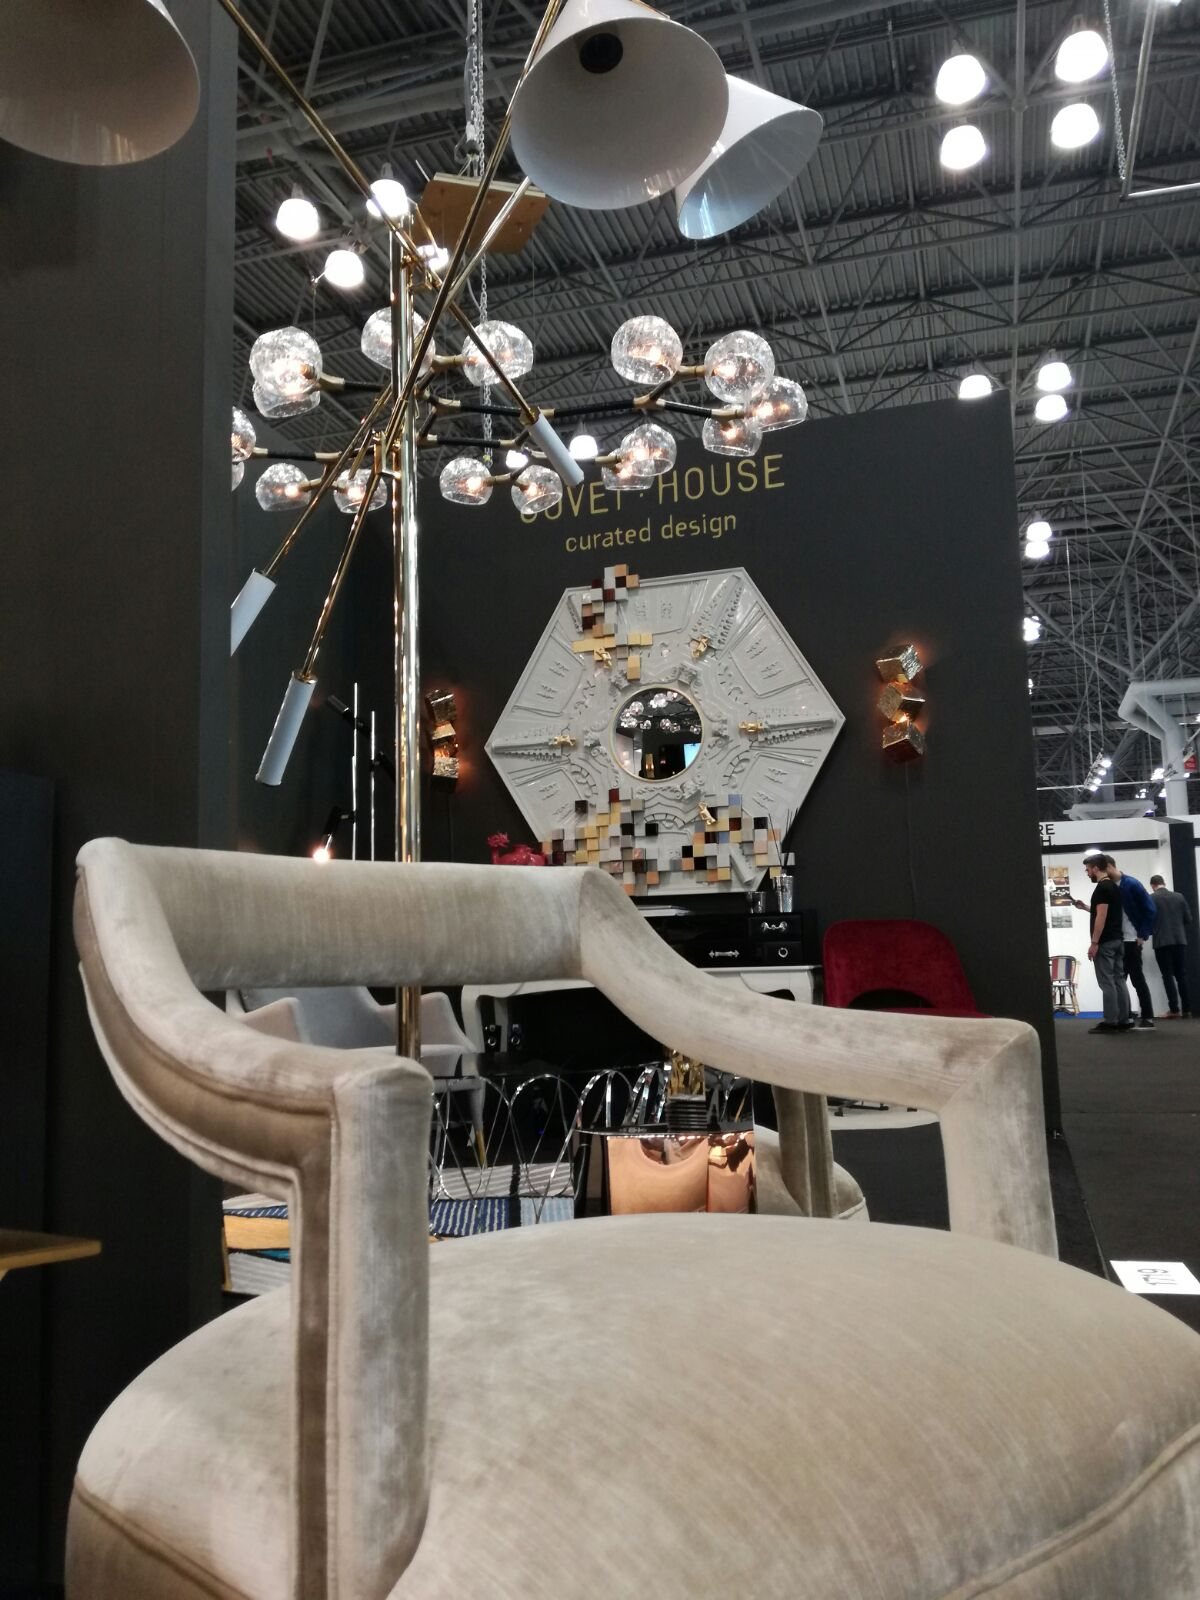 icff 2018 ICFF 2018: A SOURCE OF INSPIRATION FOR CONTEMPORARY DESIGN ICFF 2018 5